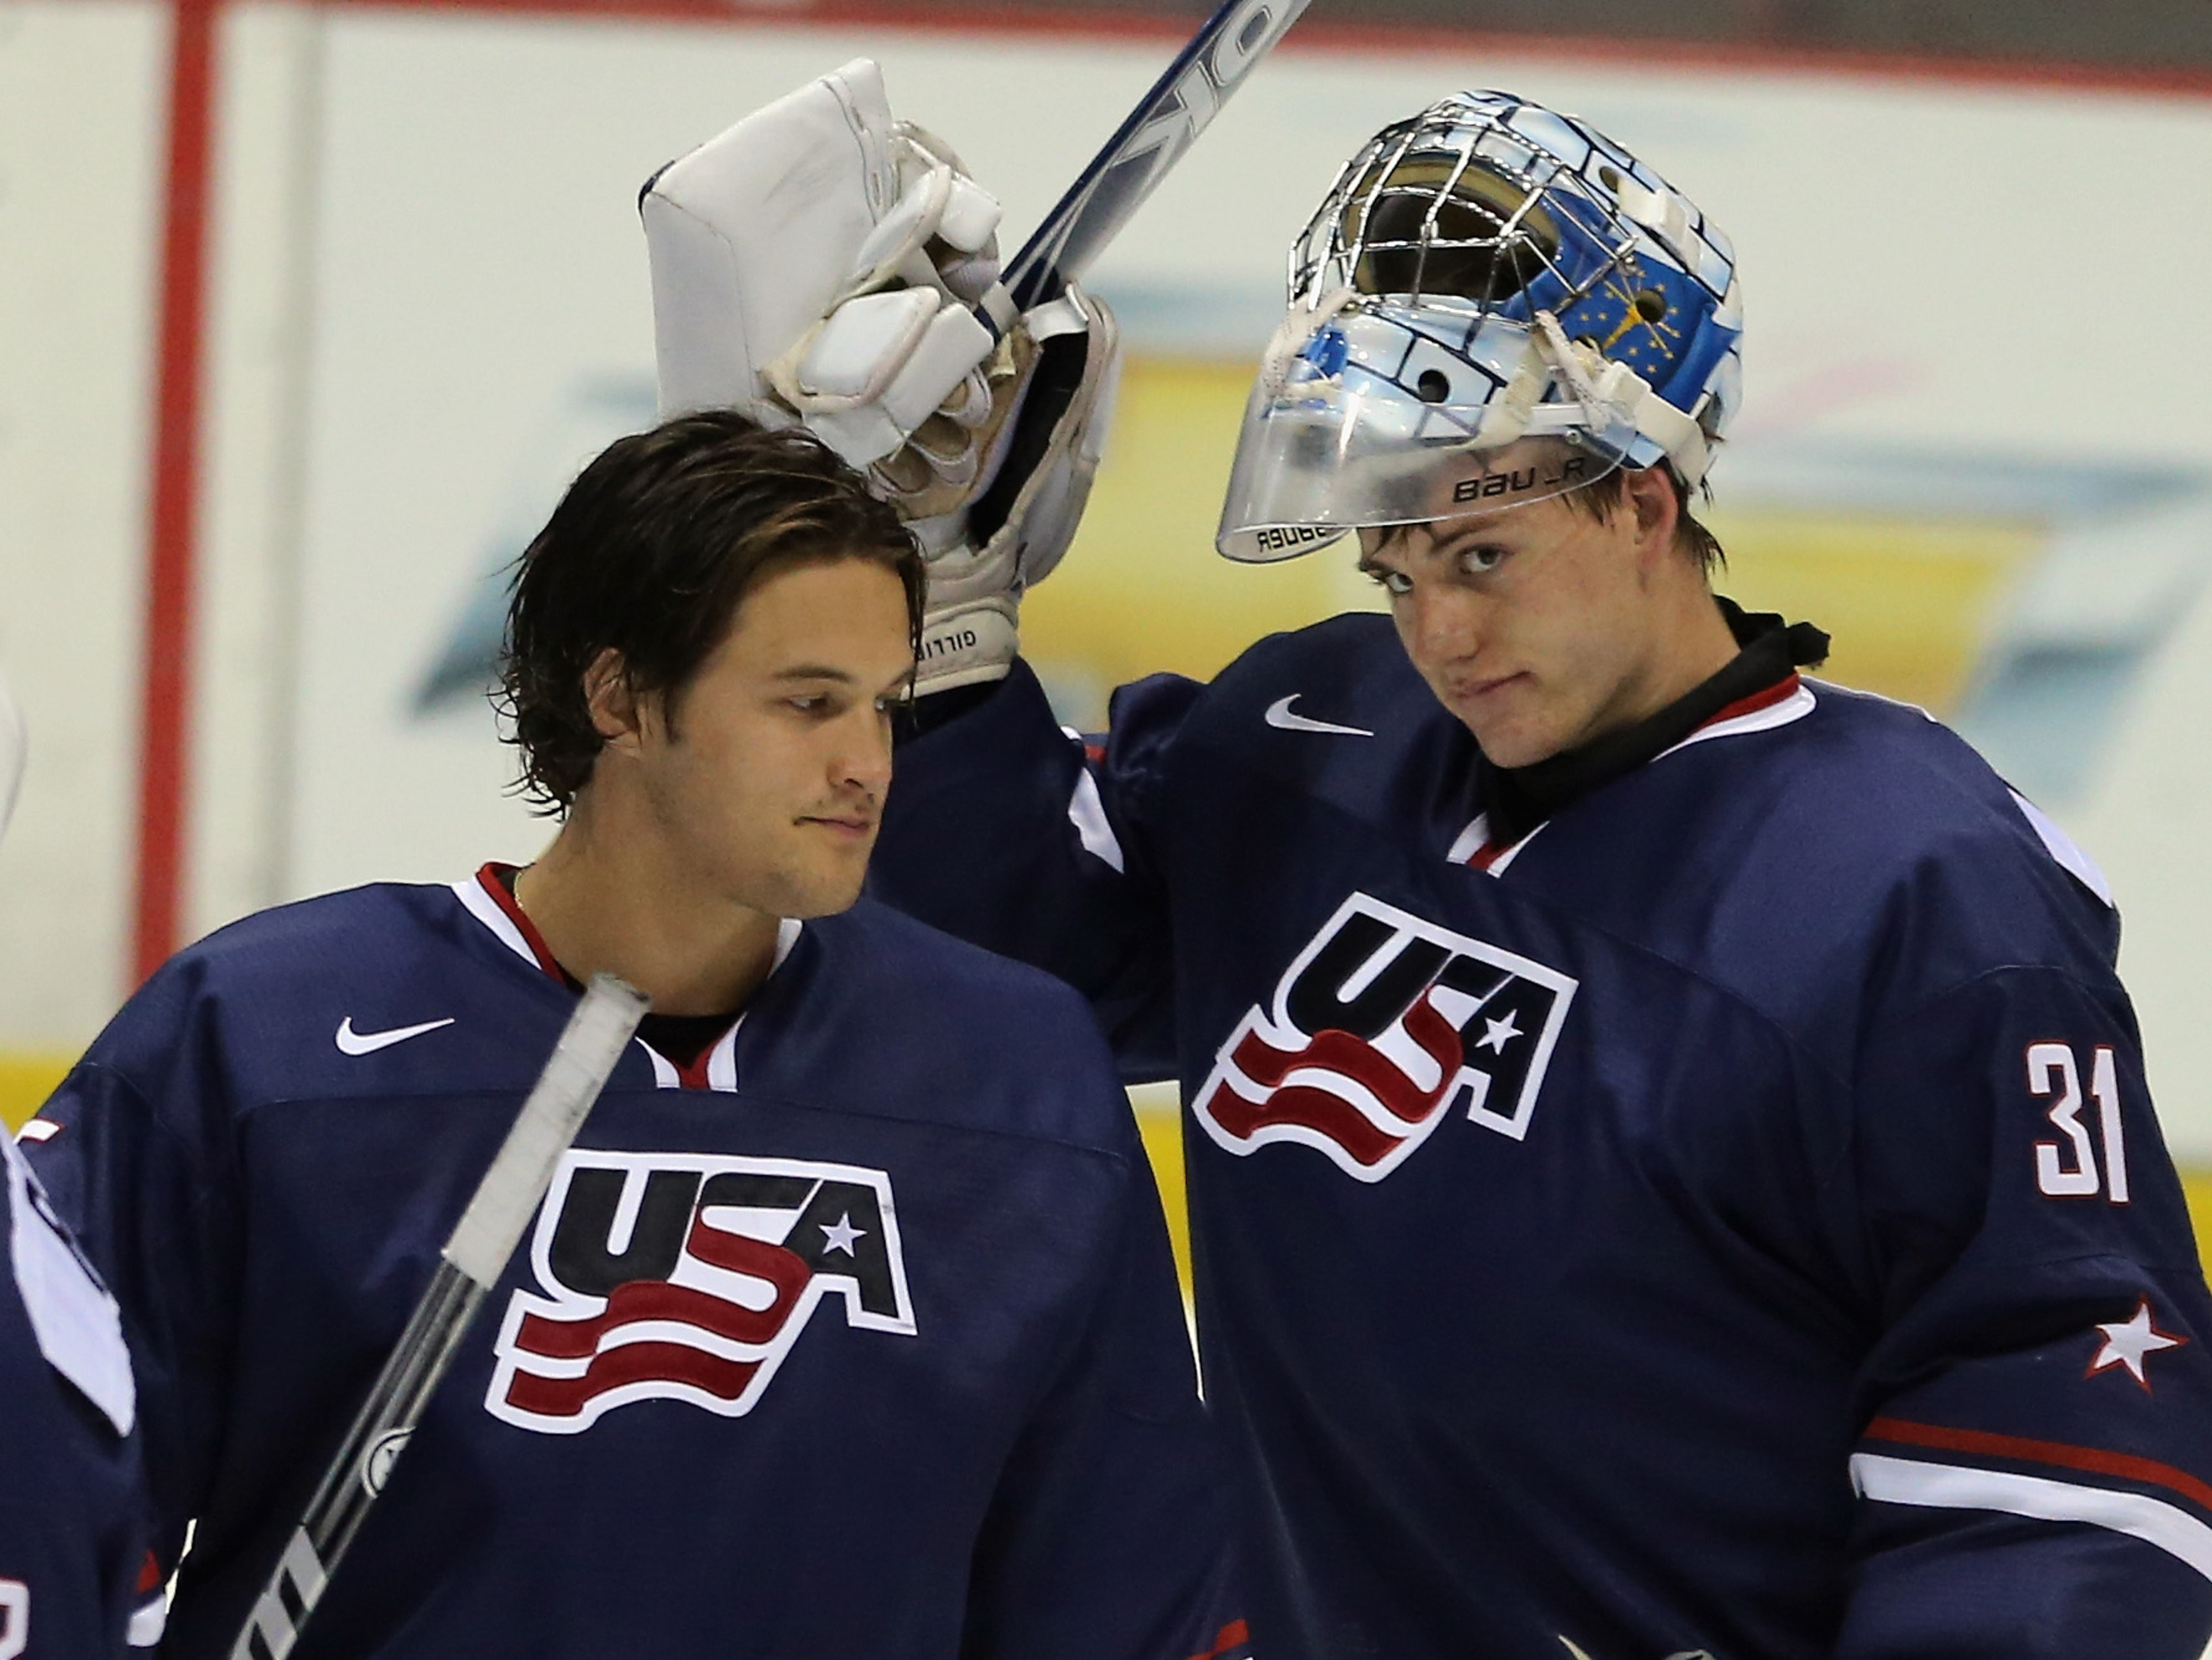 John Gibson (left) led the United States to Gold last year. It is Providence's Jon Gillies (right) turn to shine in 2014.